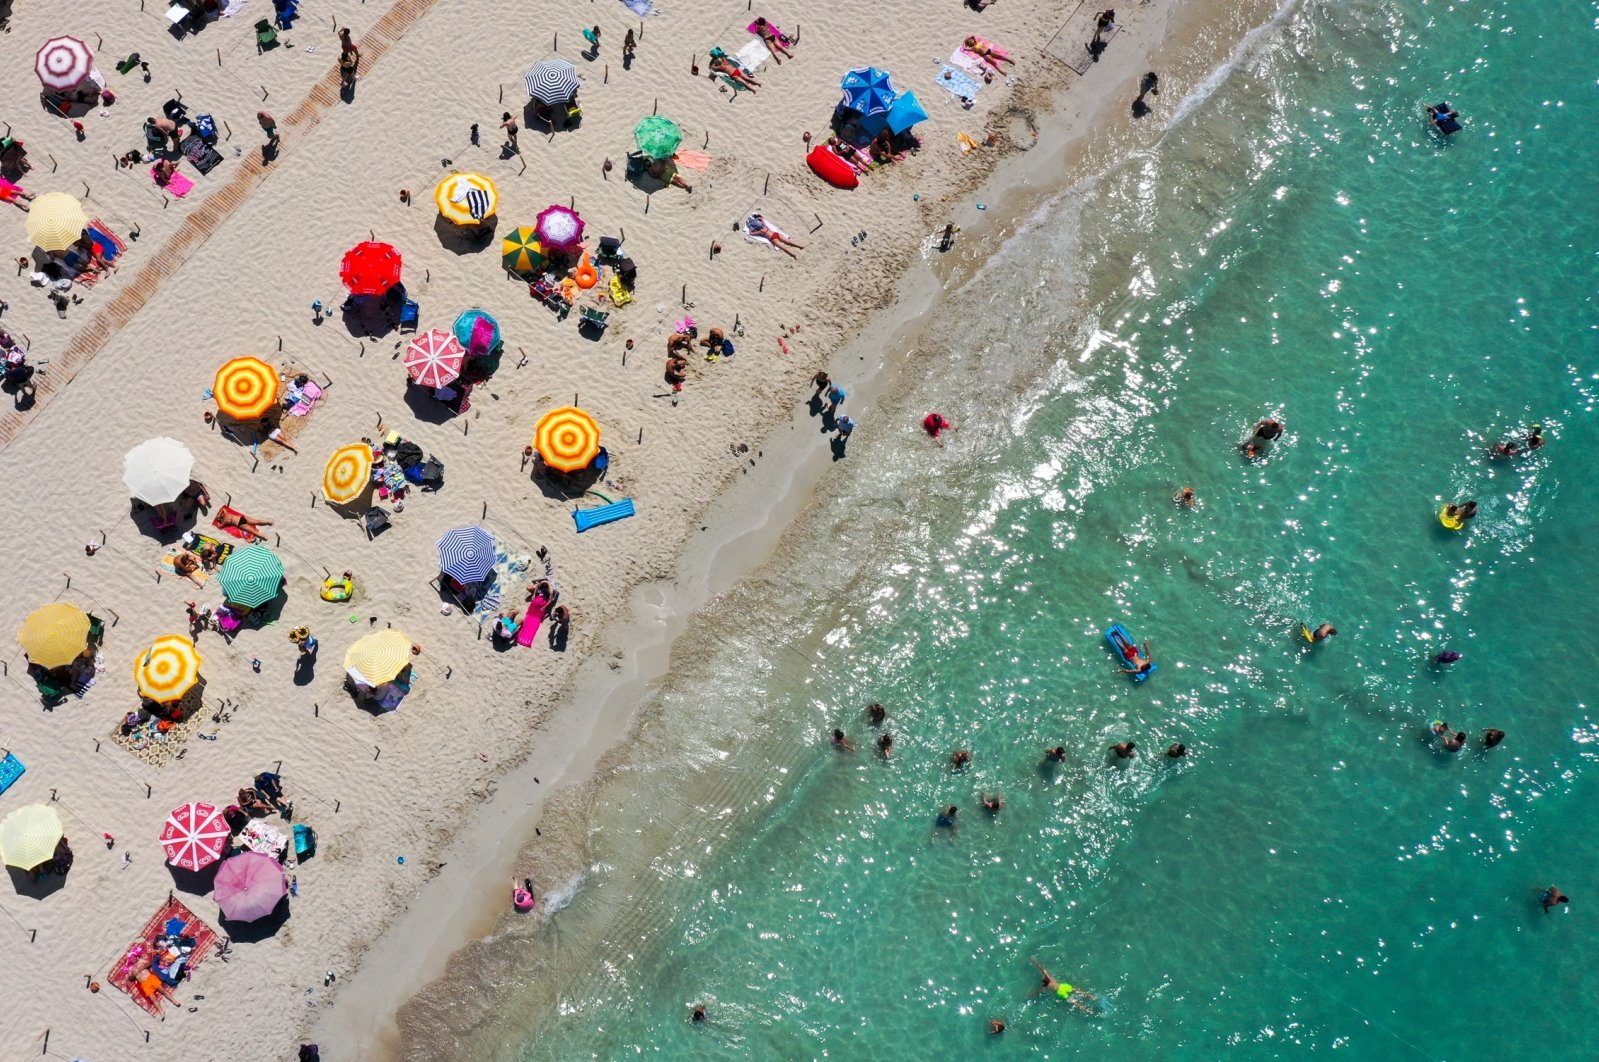 People enjoy the sun at Ilıca Beach in Çeşme, a resort town west of Izmir, in Turkey's Aegean region, July 19, 2020. (AA Photo)